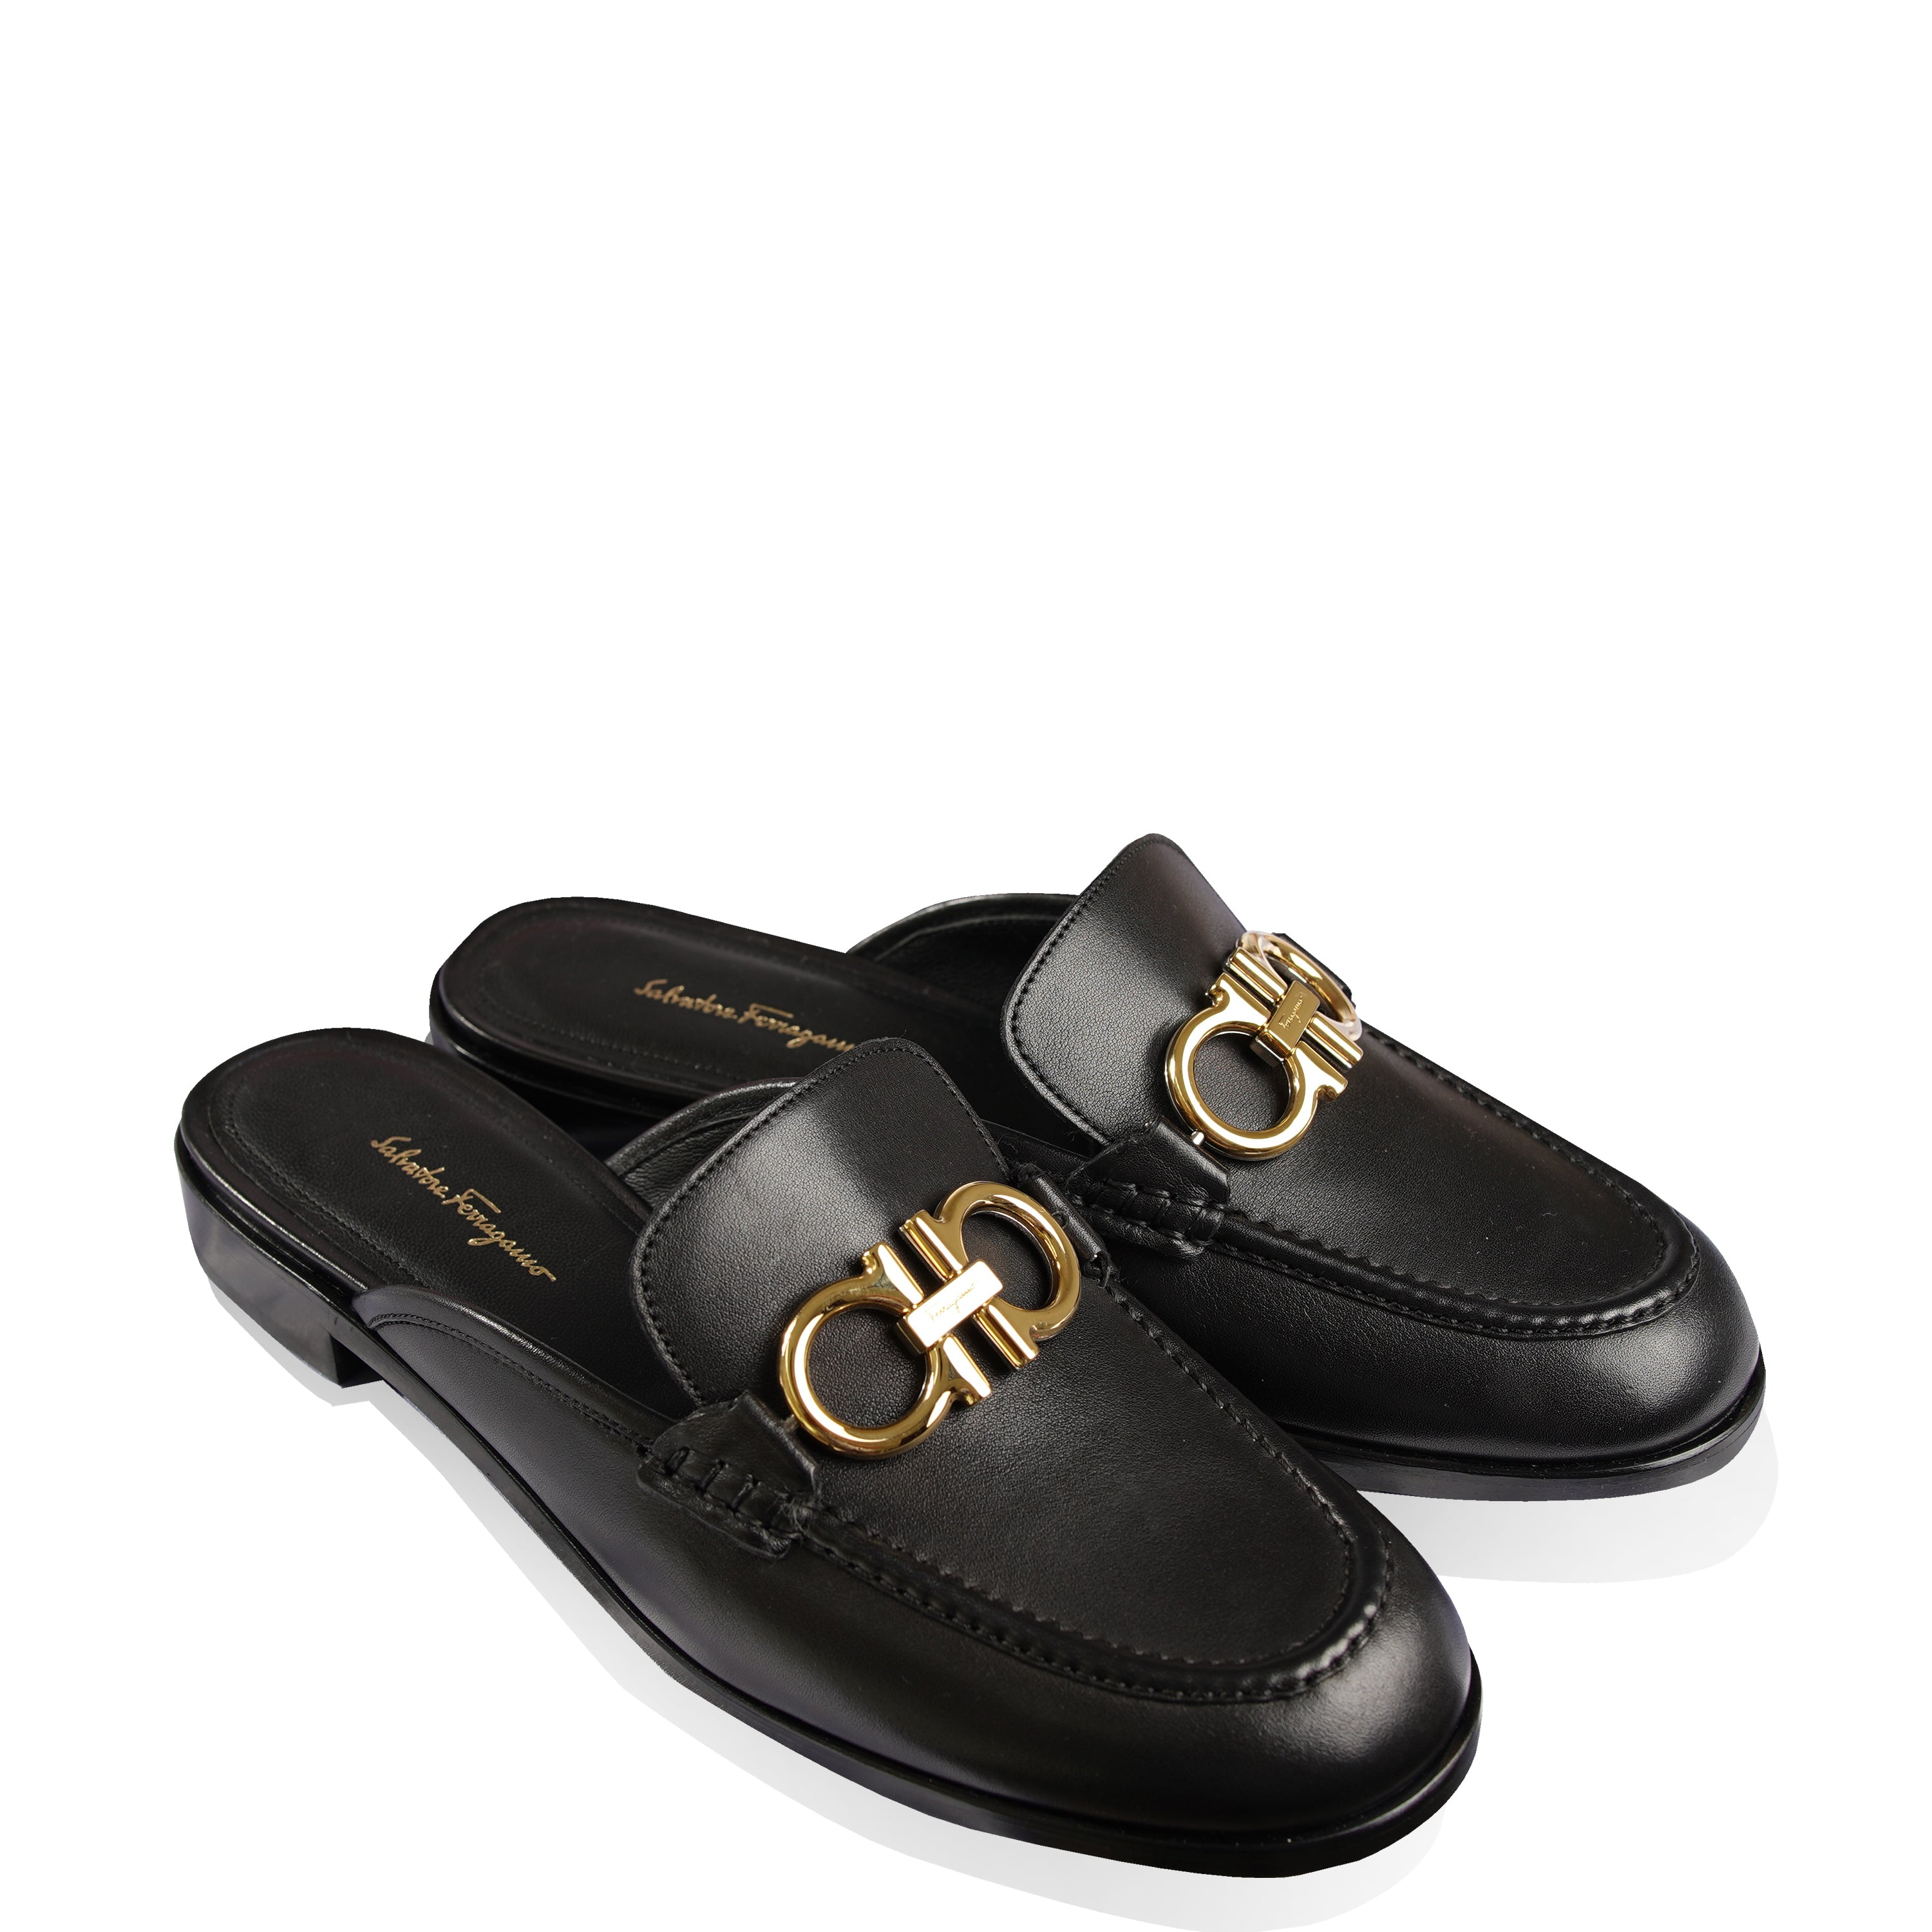 Salvatore Ferragamo Women's Leather Viaggio Gancini Mules Size 38 Black Gold